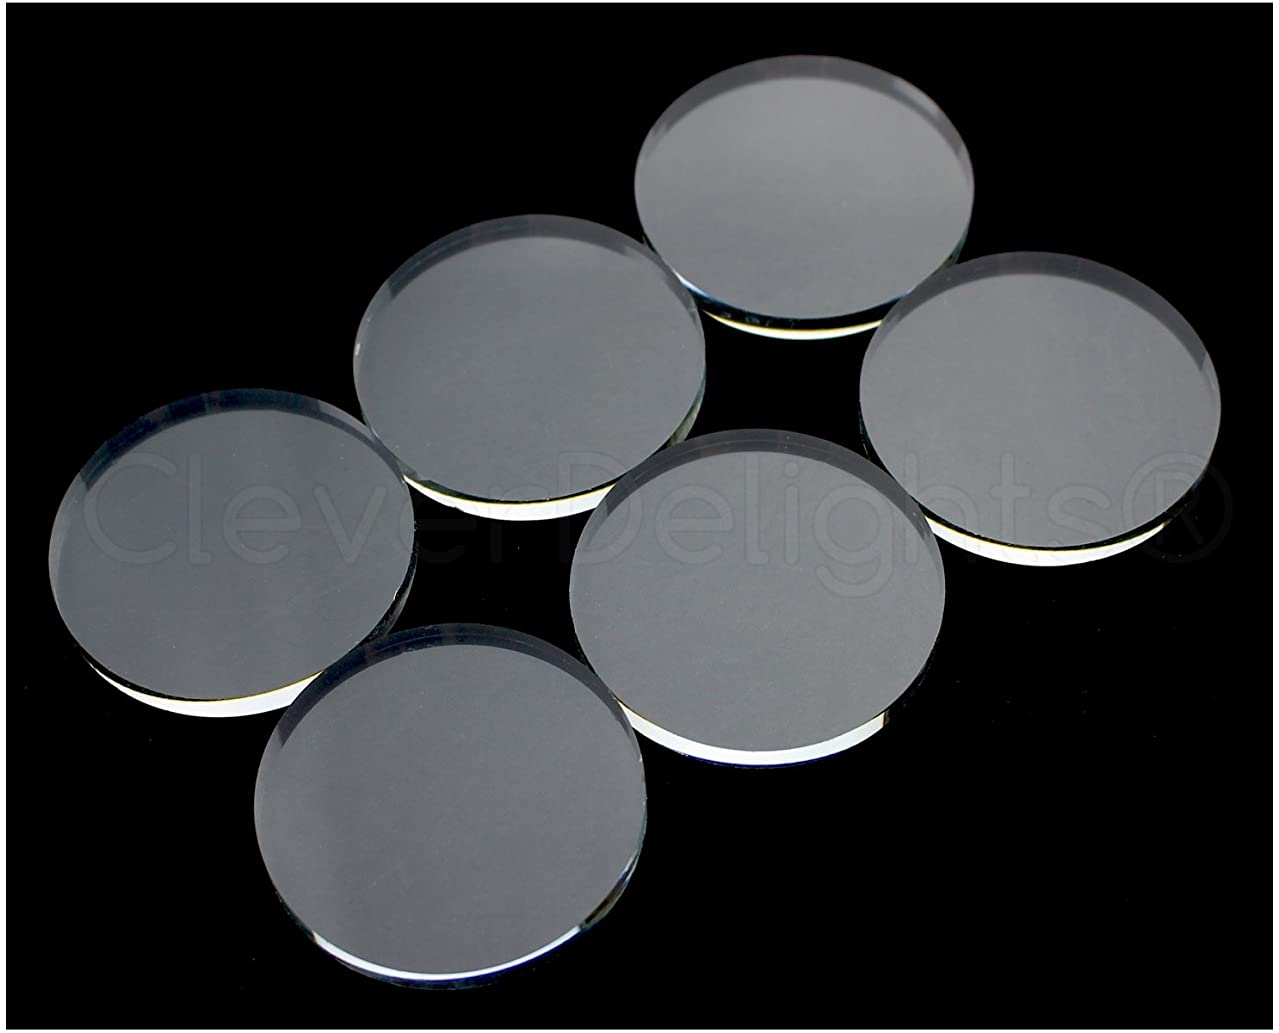 50 CleverDelights Round Glass Tiles - 40mm (1 9/16